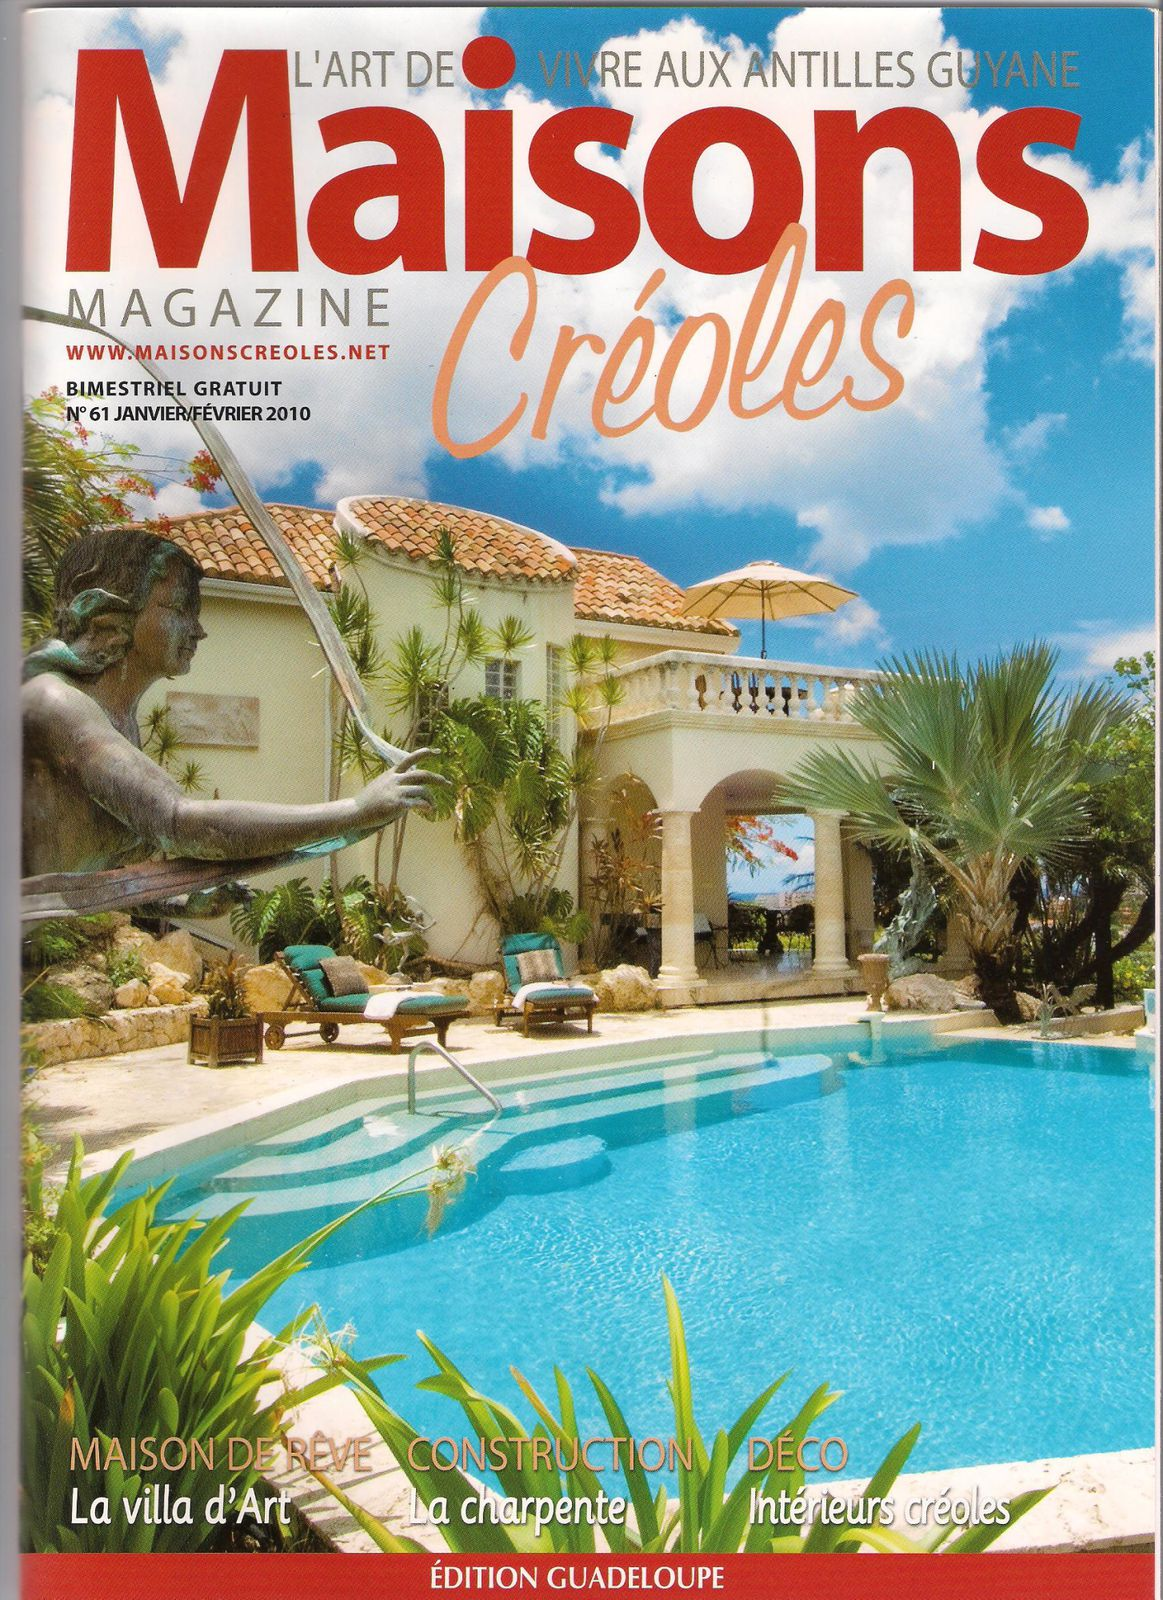 Album maisons creoles magazine le blog d 39 ingrid samson for Maison francaise magazine abonnement